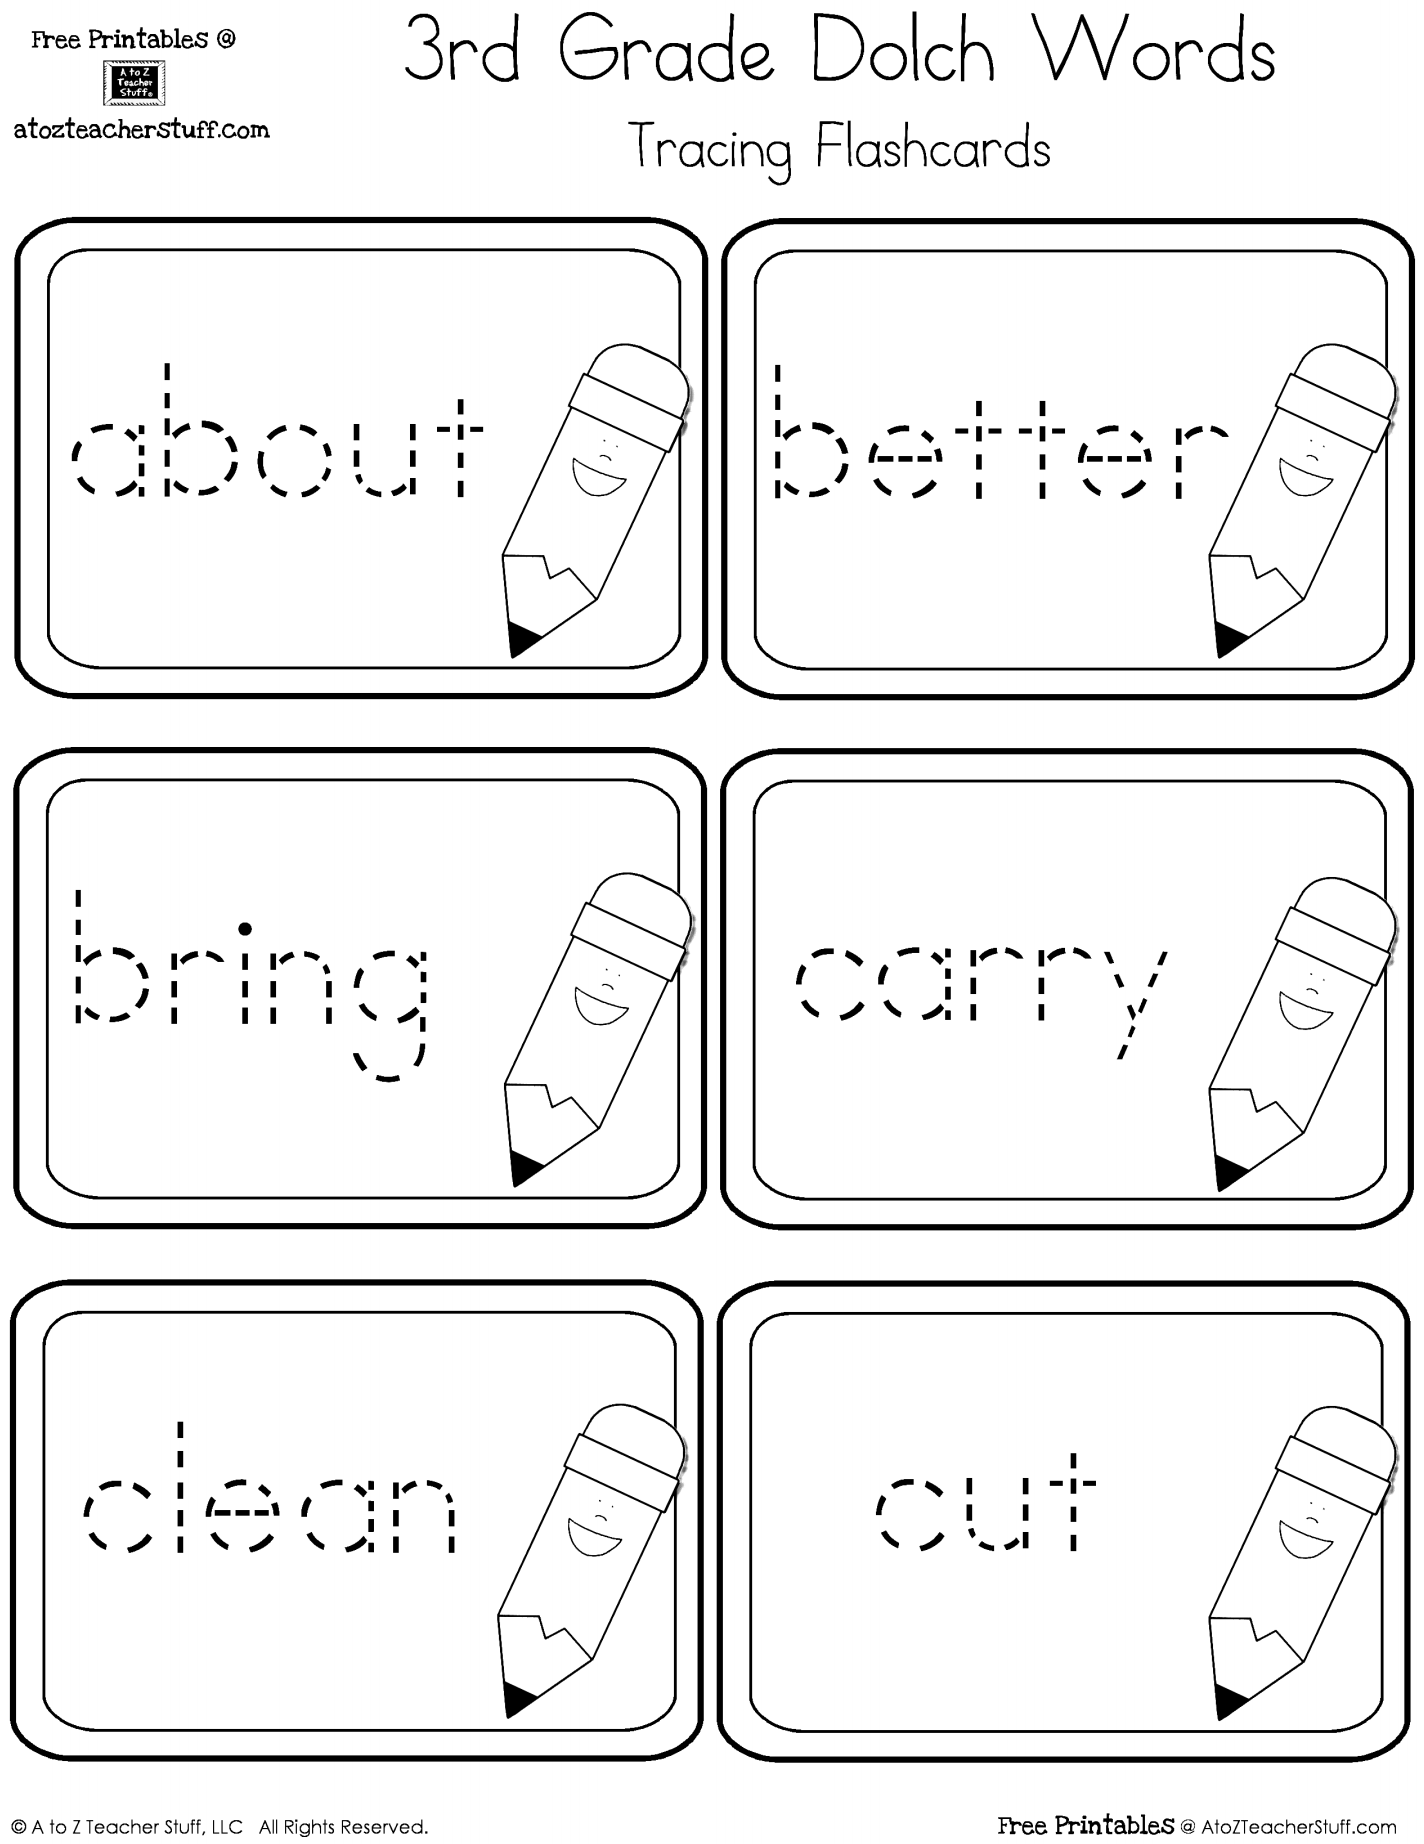 3rd Grade Worksheets To Print : Word tracing worksheets imgkid the image kid